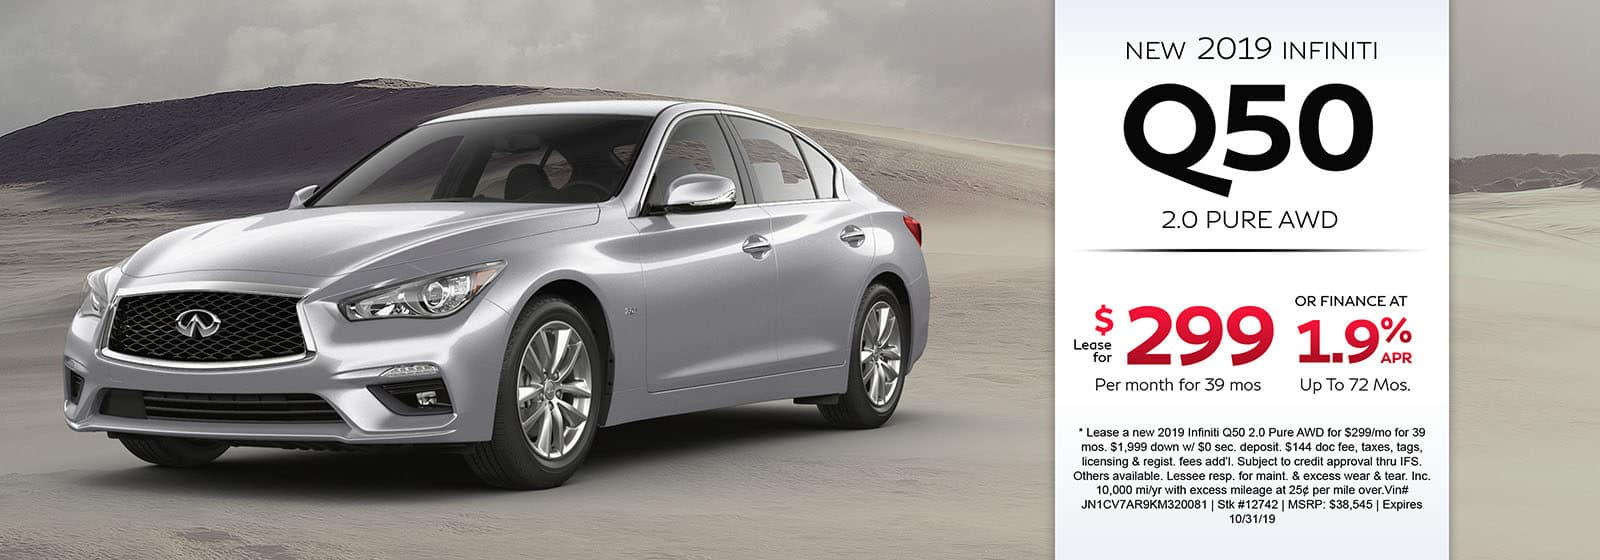 Lease a new 2019 INFINITI Q50 2.0 Pure AWD for $299 a month for 39 months. Or get special 1.9% APR financing for up to 72 months